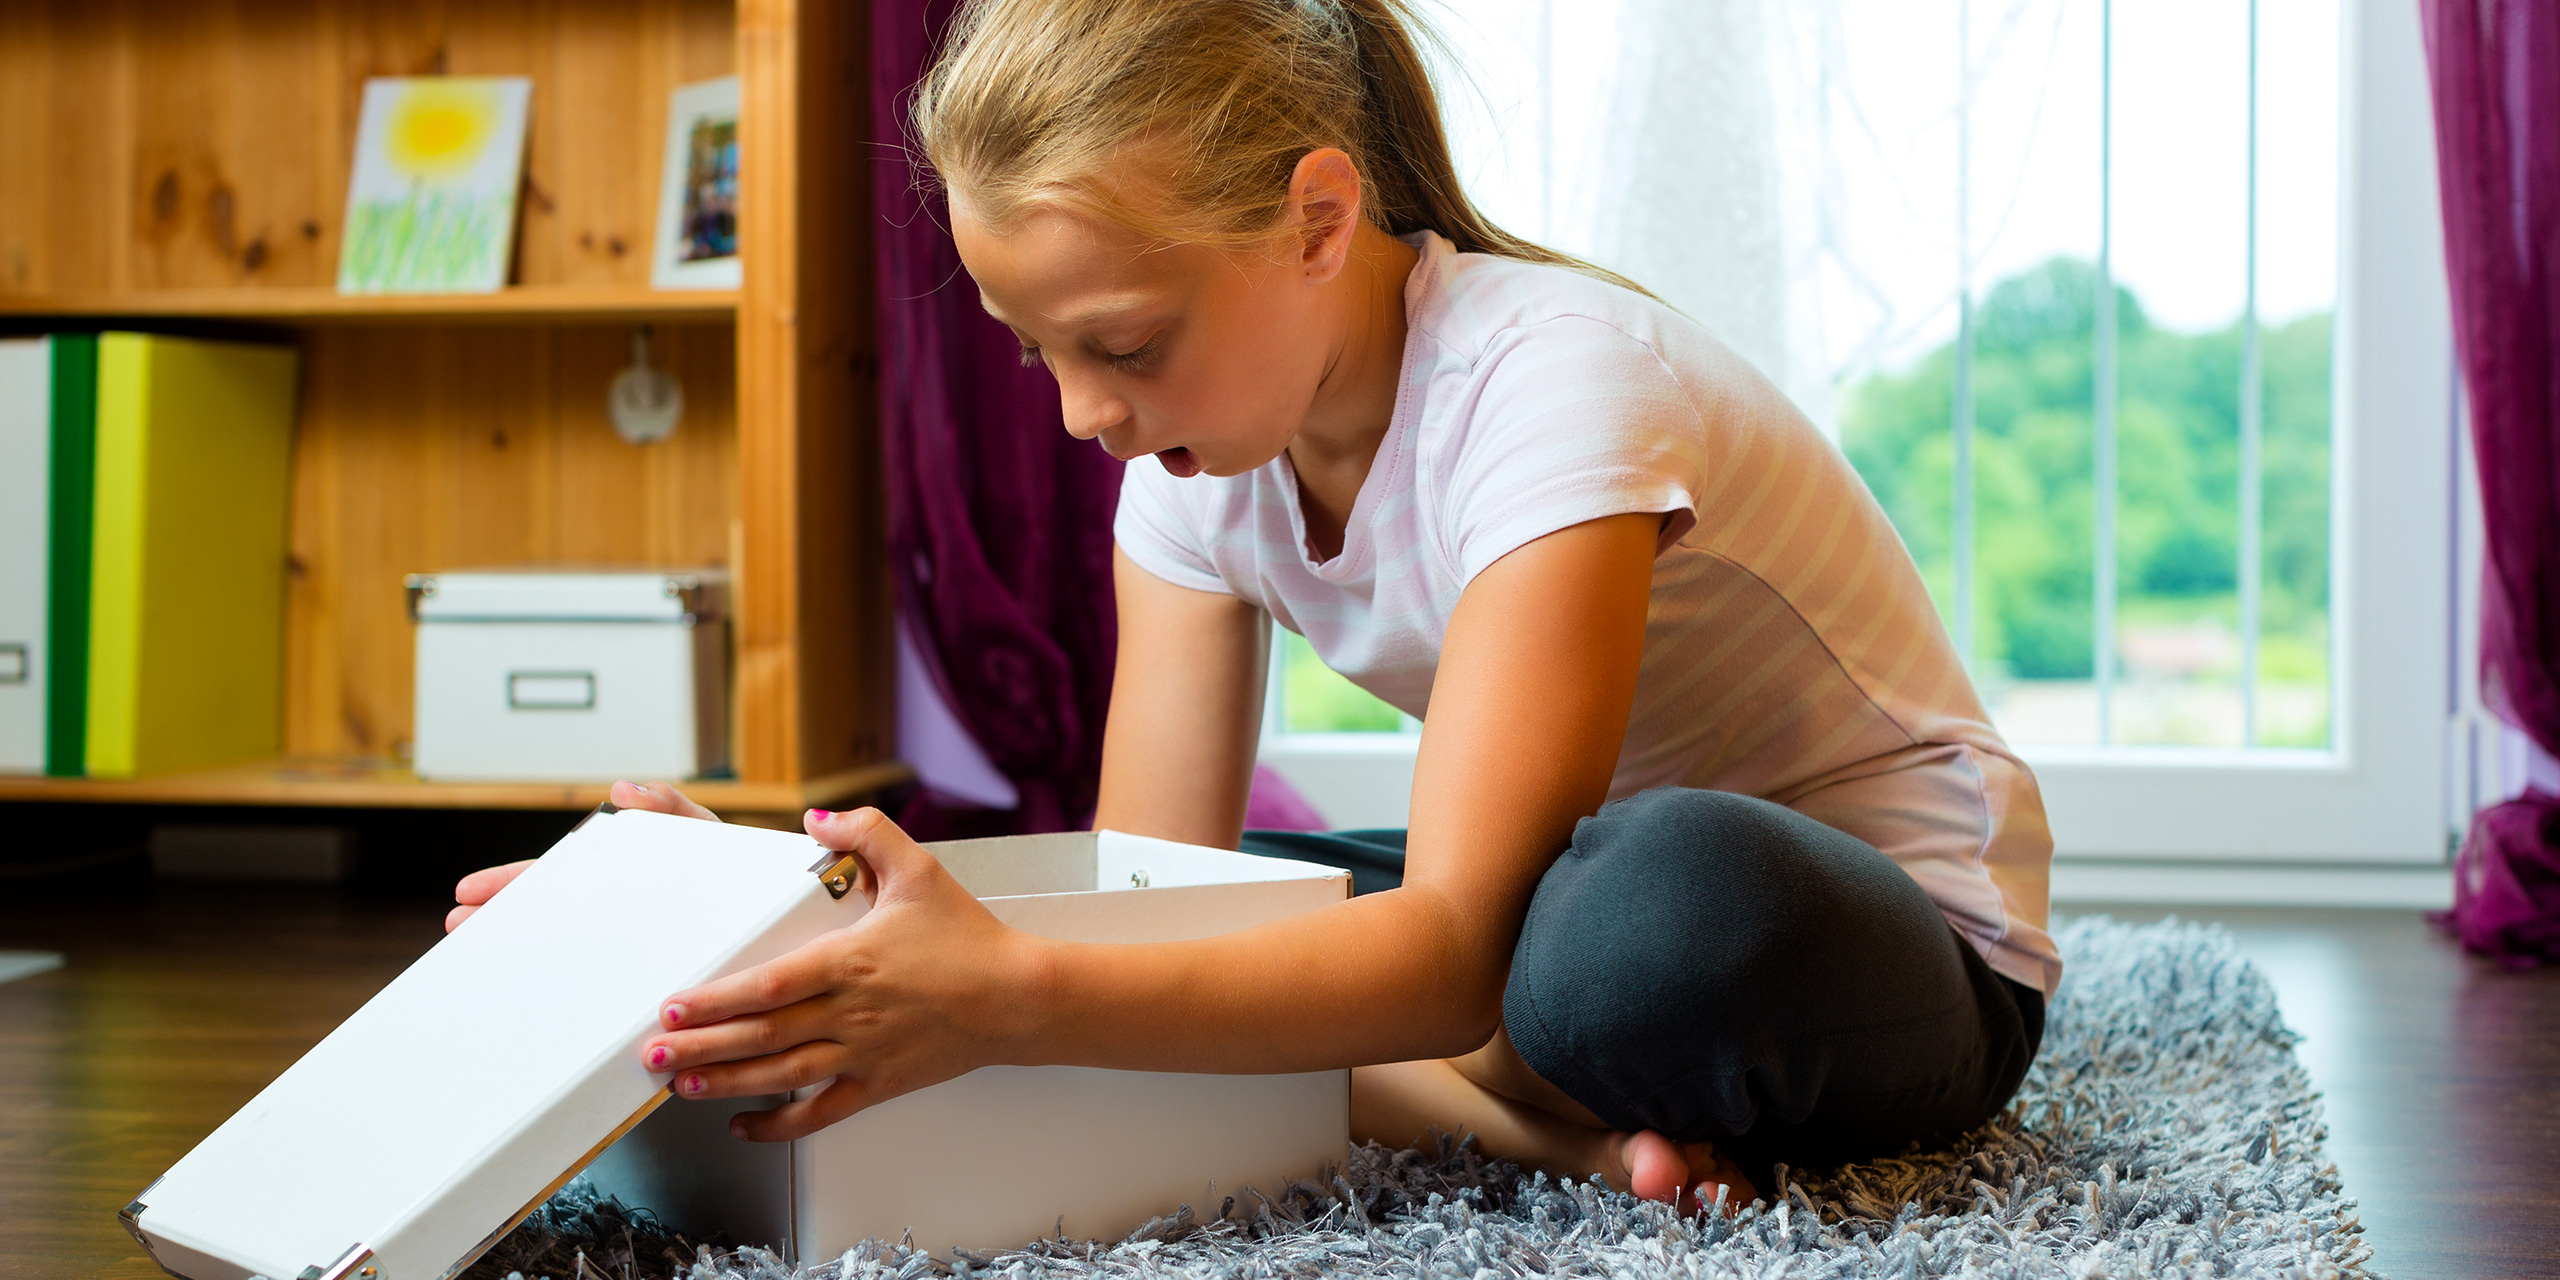 girl opening a box; Courtesy of Shutterstock